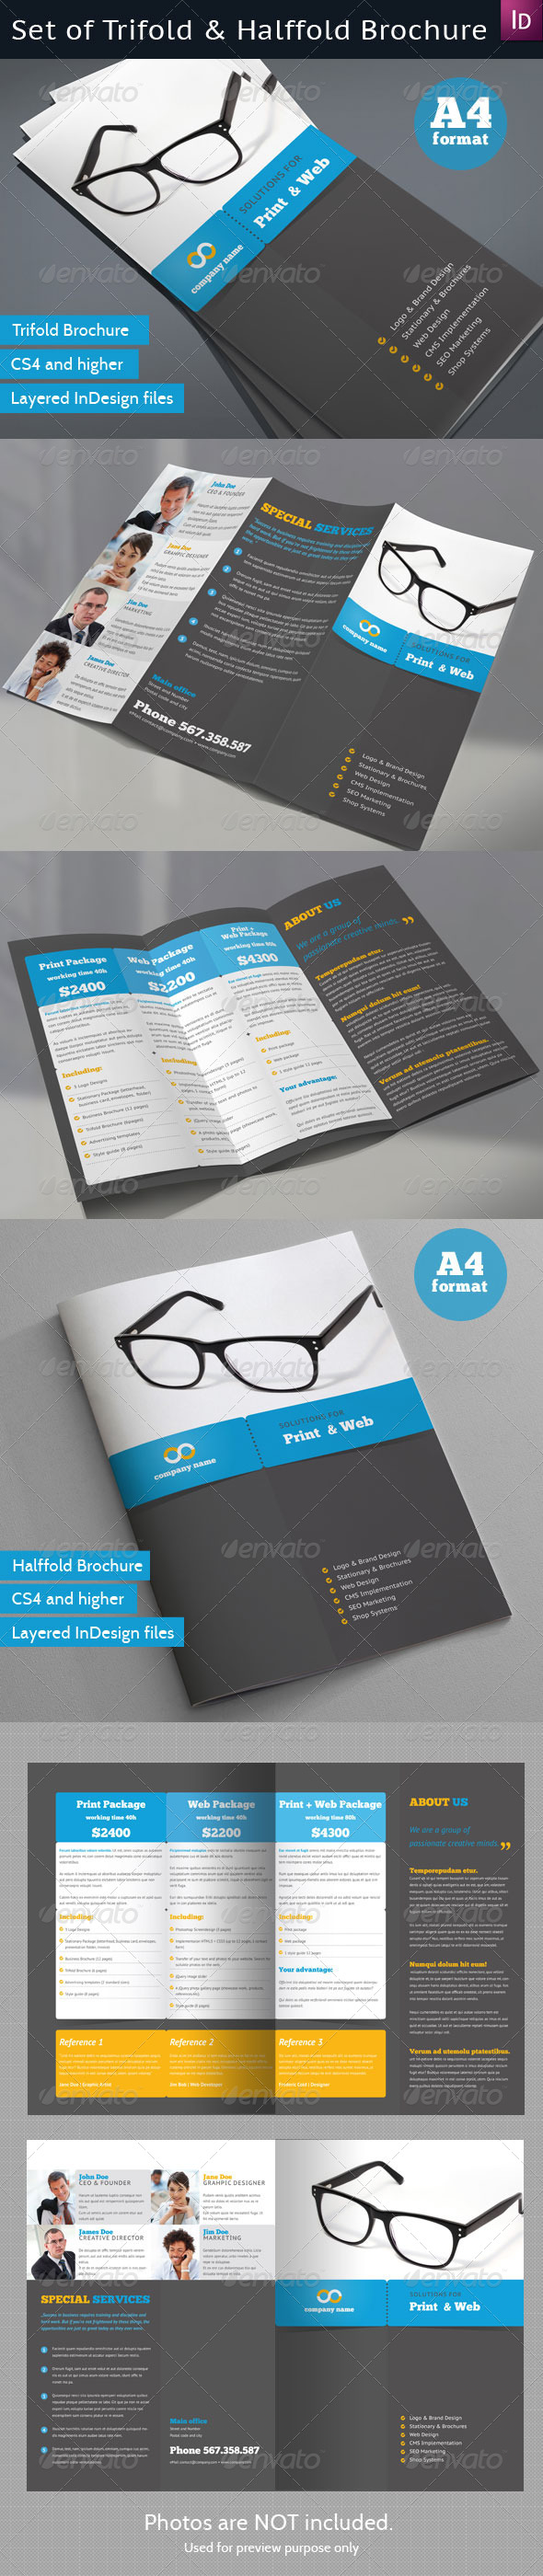 GraphicRiver Set of Trifold and Halffold Brochures 4153499